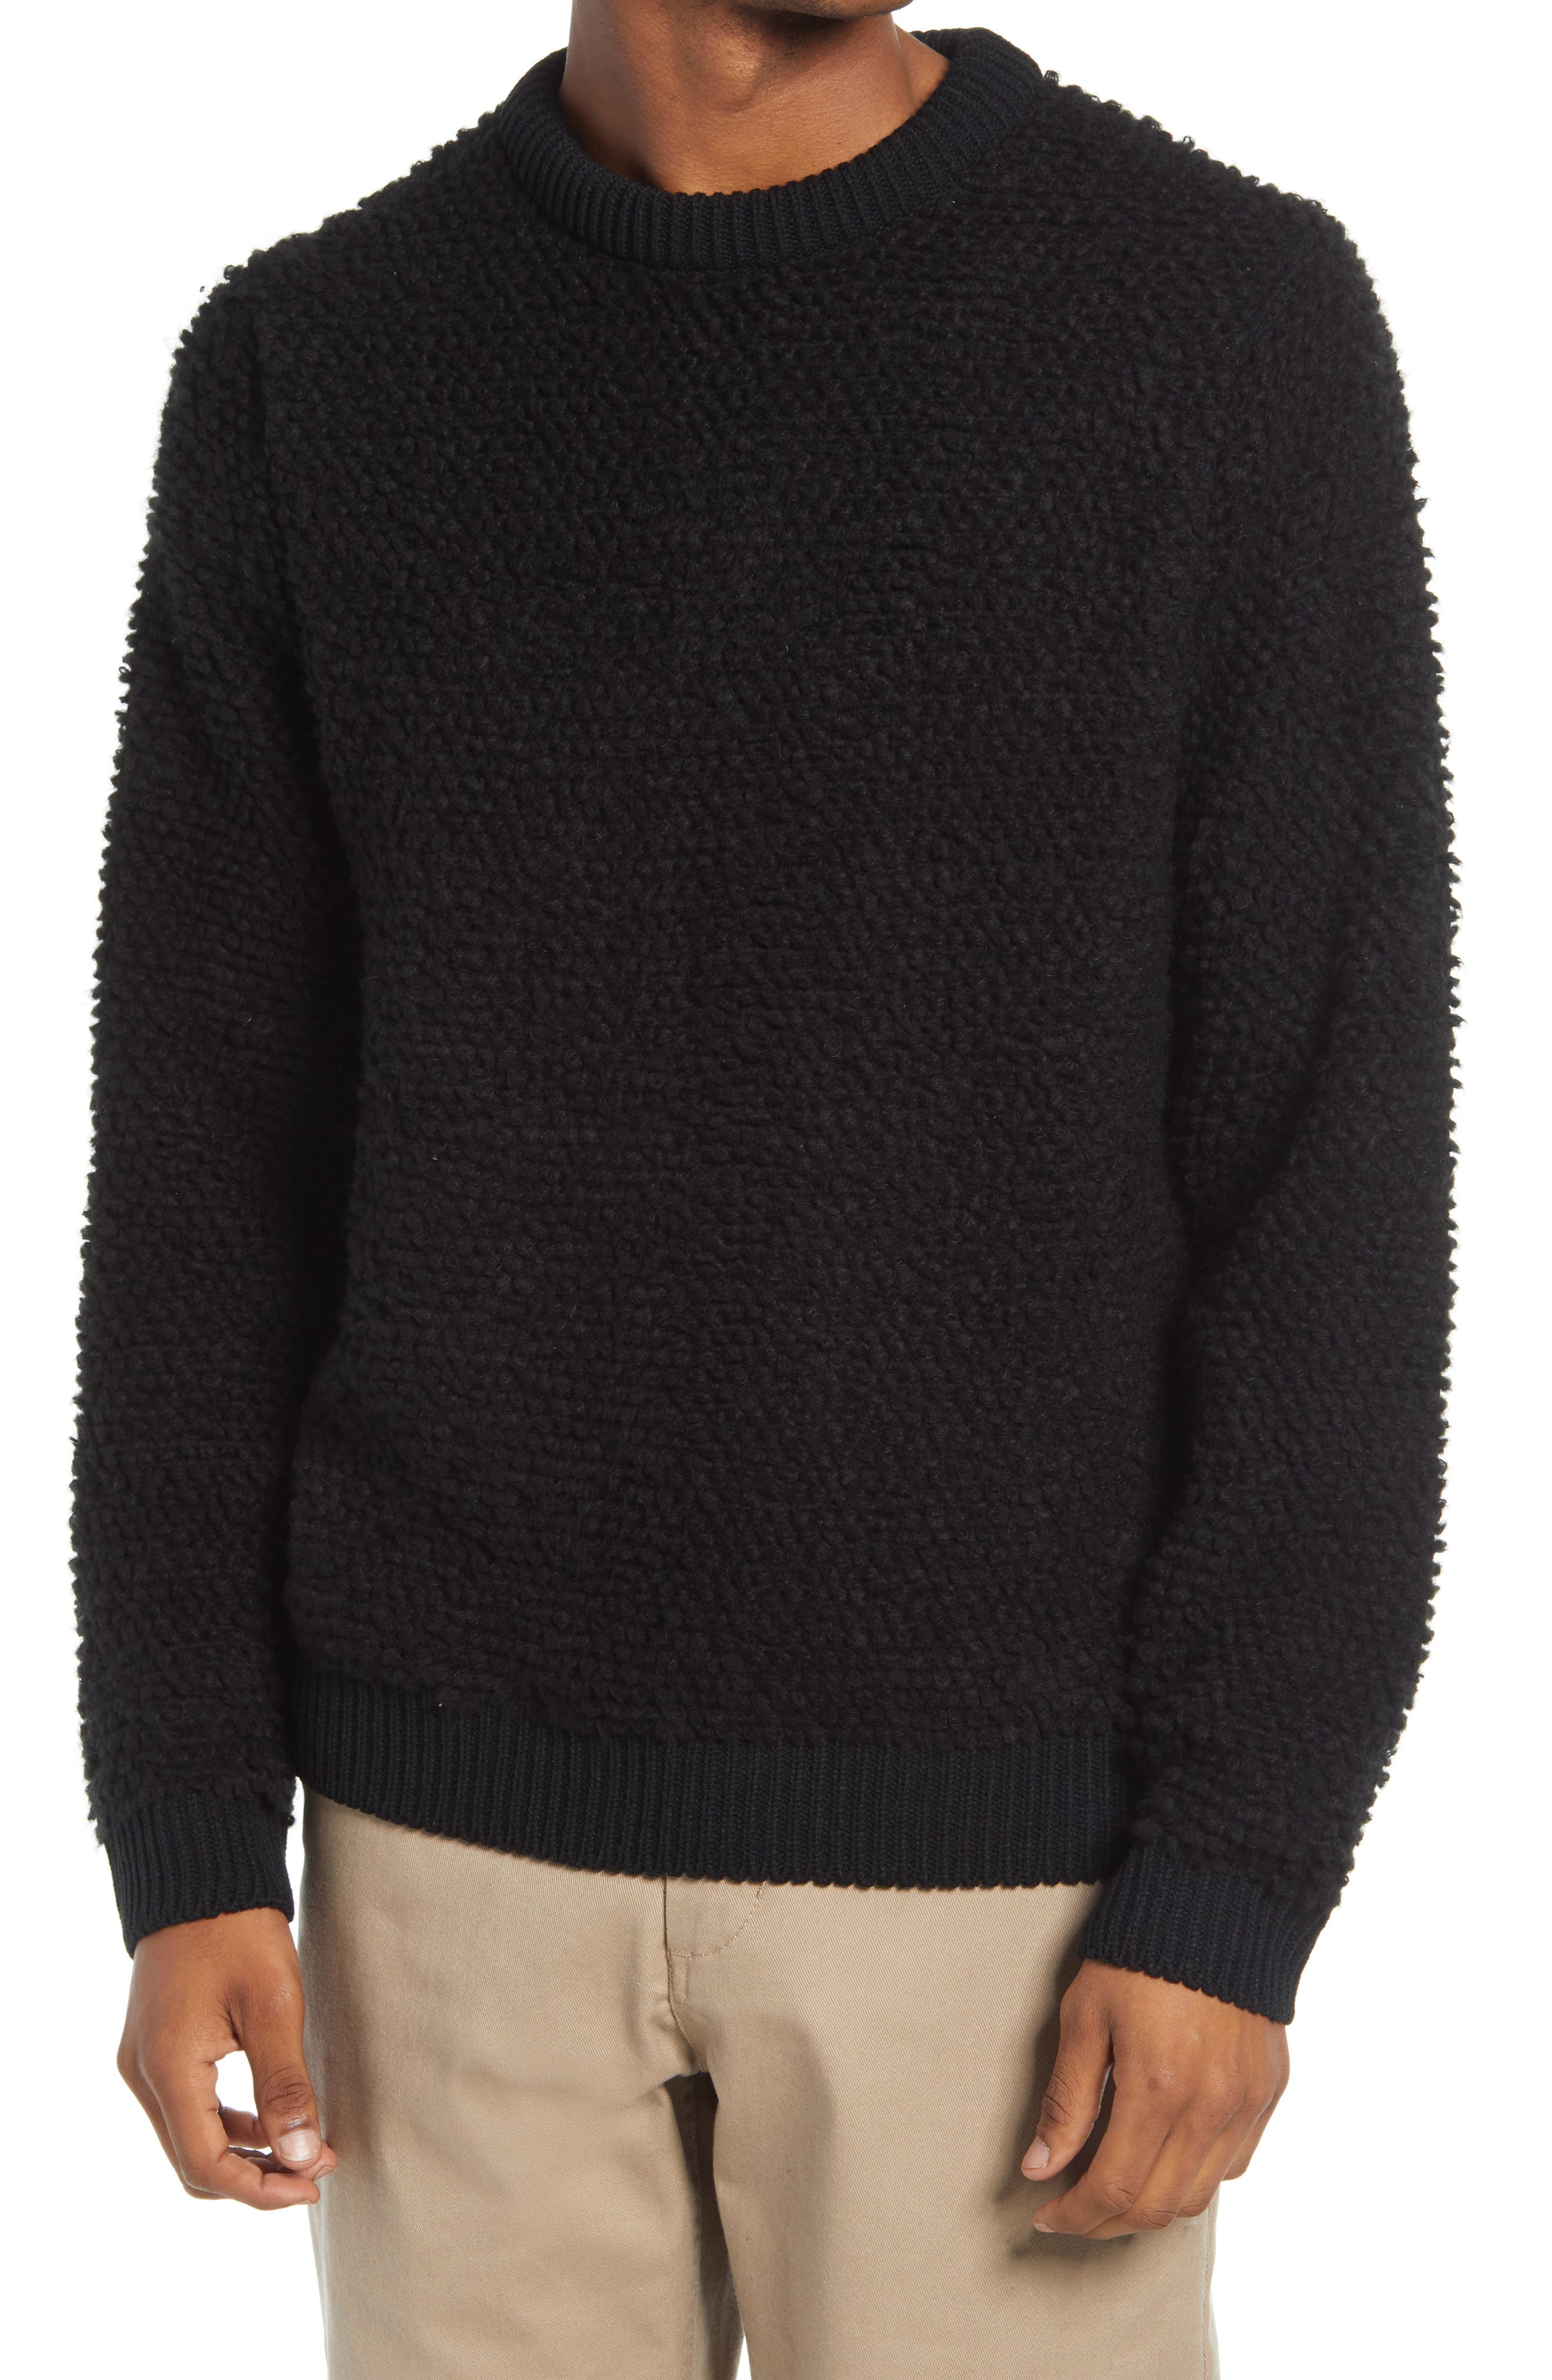 Boucle knit makes this classic crewneck sweater as soft as it is warm, with a fit that\\\'s great layered or on it\\\'s own. Style Name: Topman Men\\\'S Boucle Crewneck Sweater. Style Number: 6155799. Available in stores.